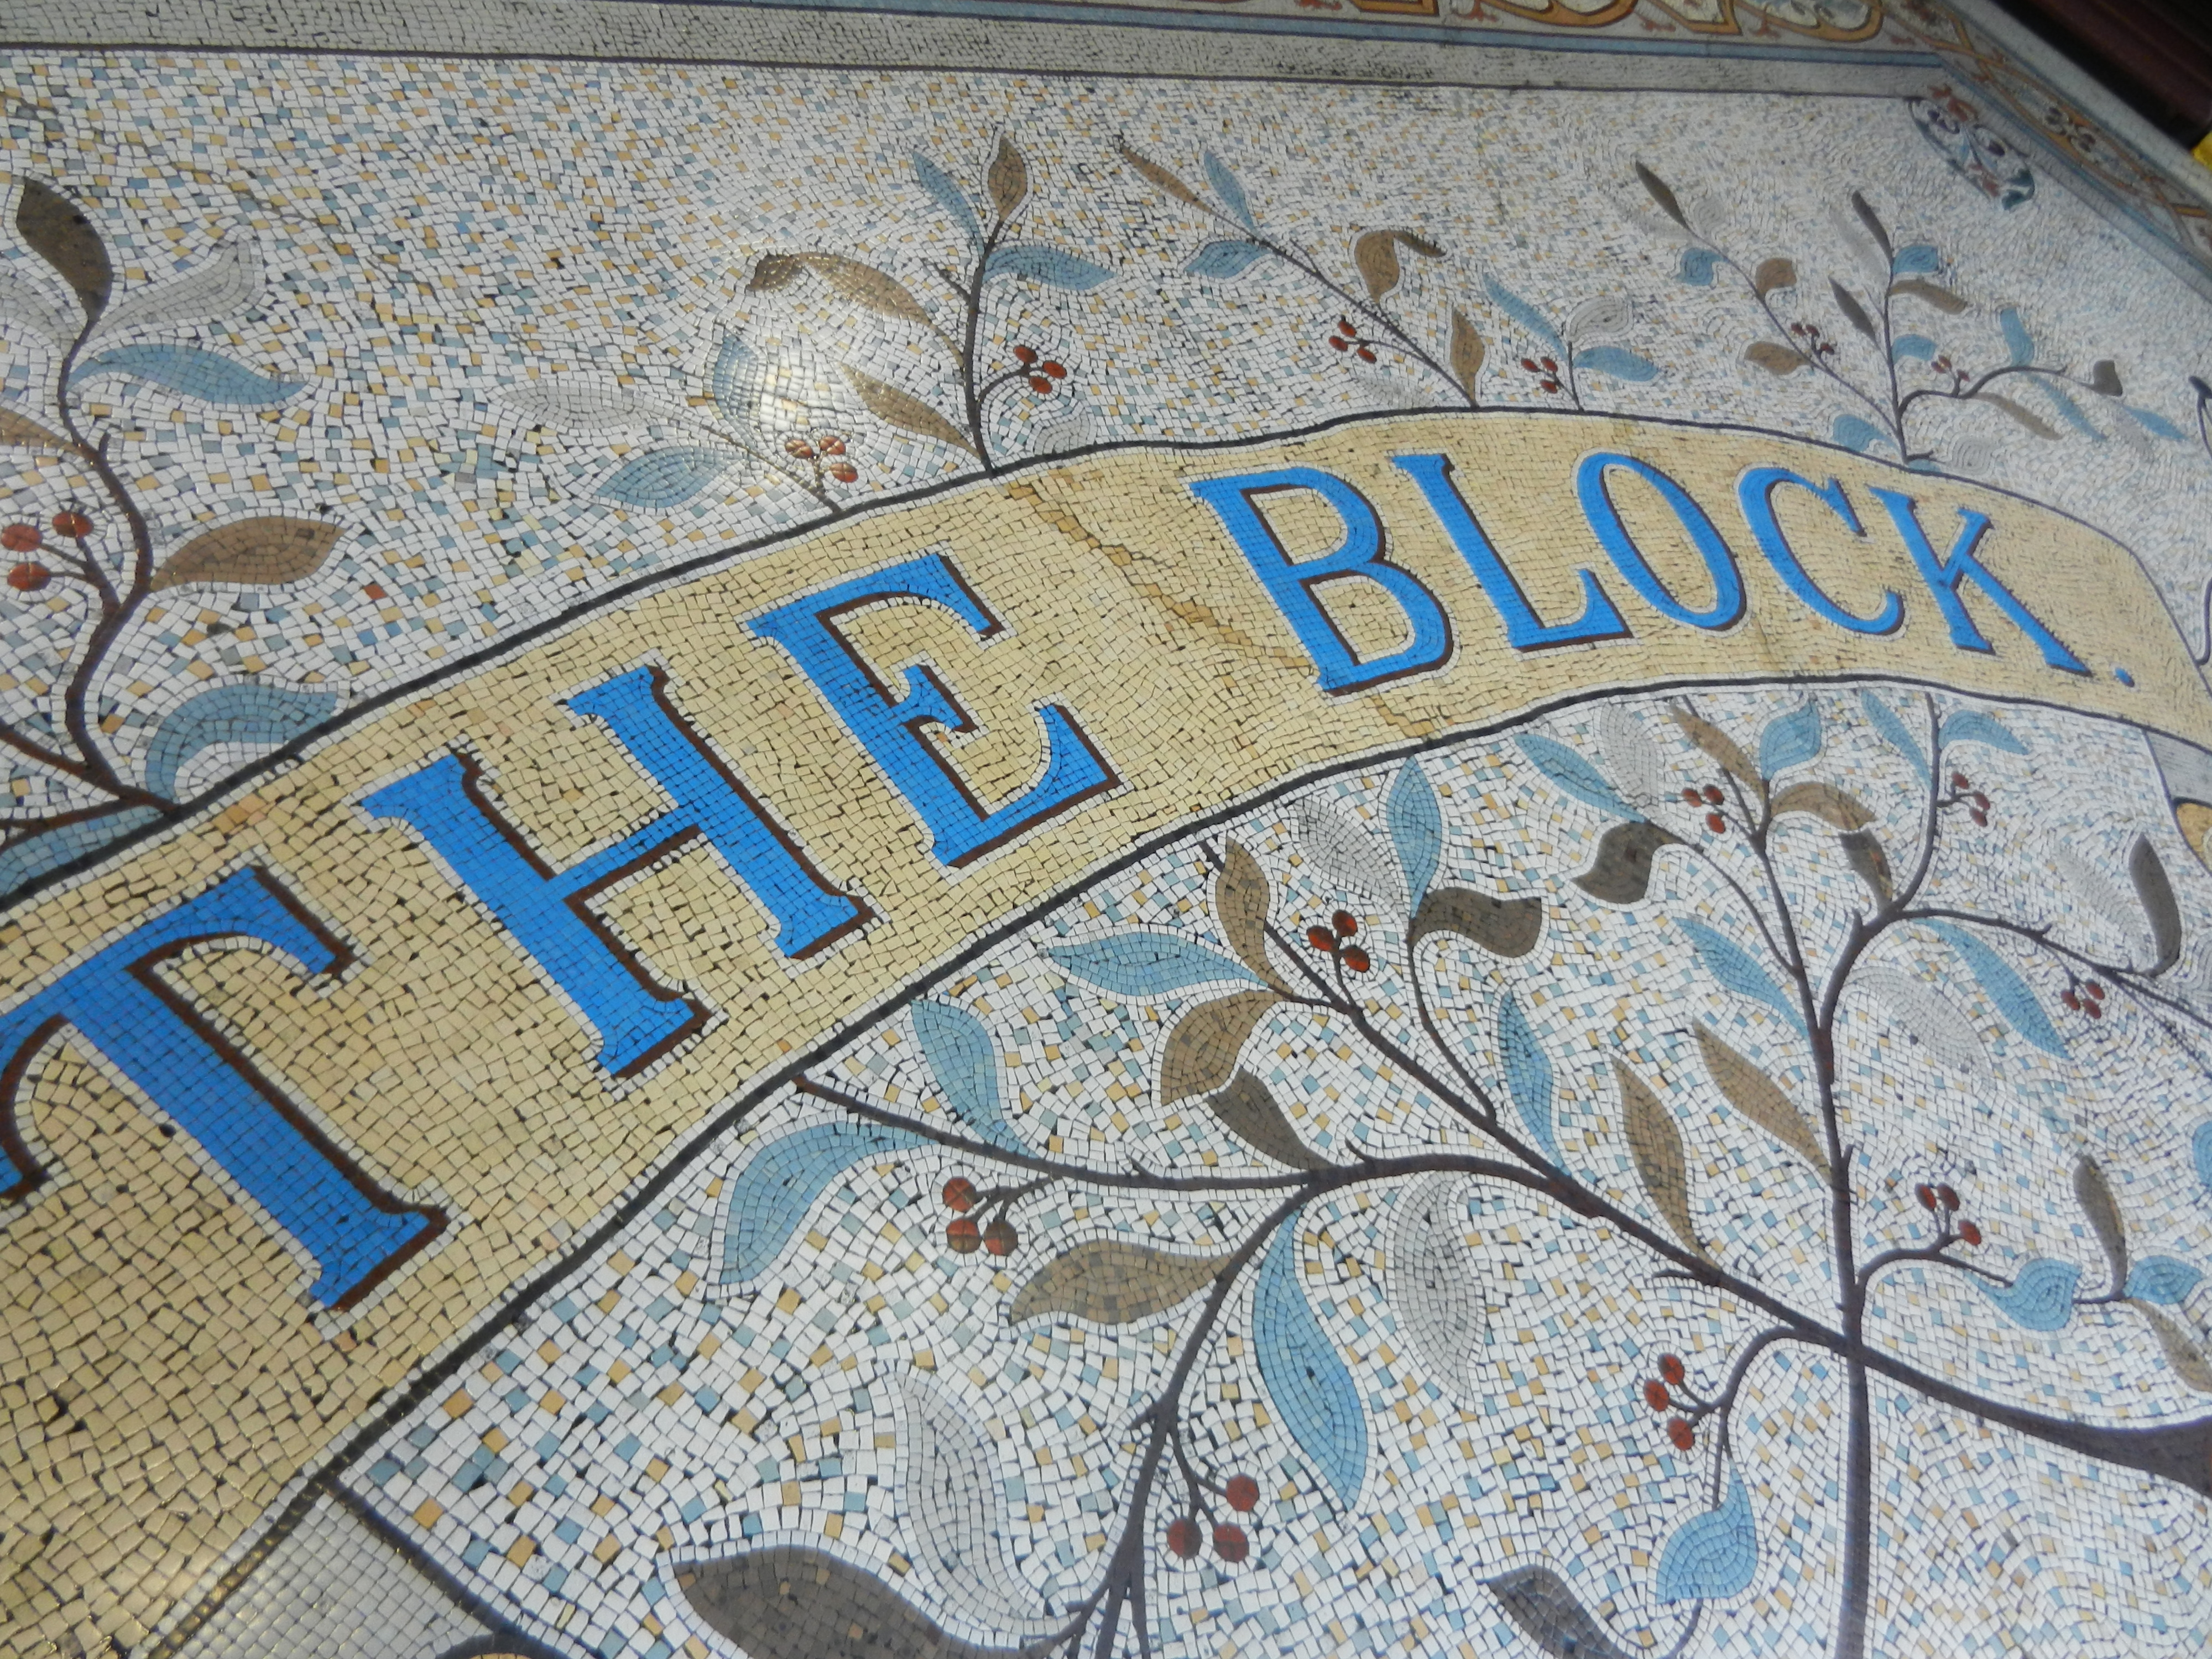 """Mosaic tiled sidewalk that reads """"The Block Arcade"""" in blue letters on a yellow background."""